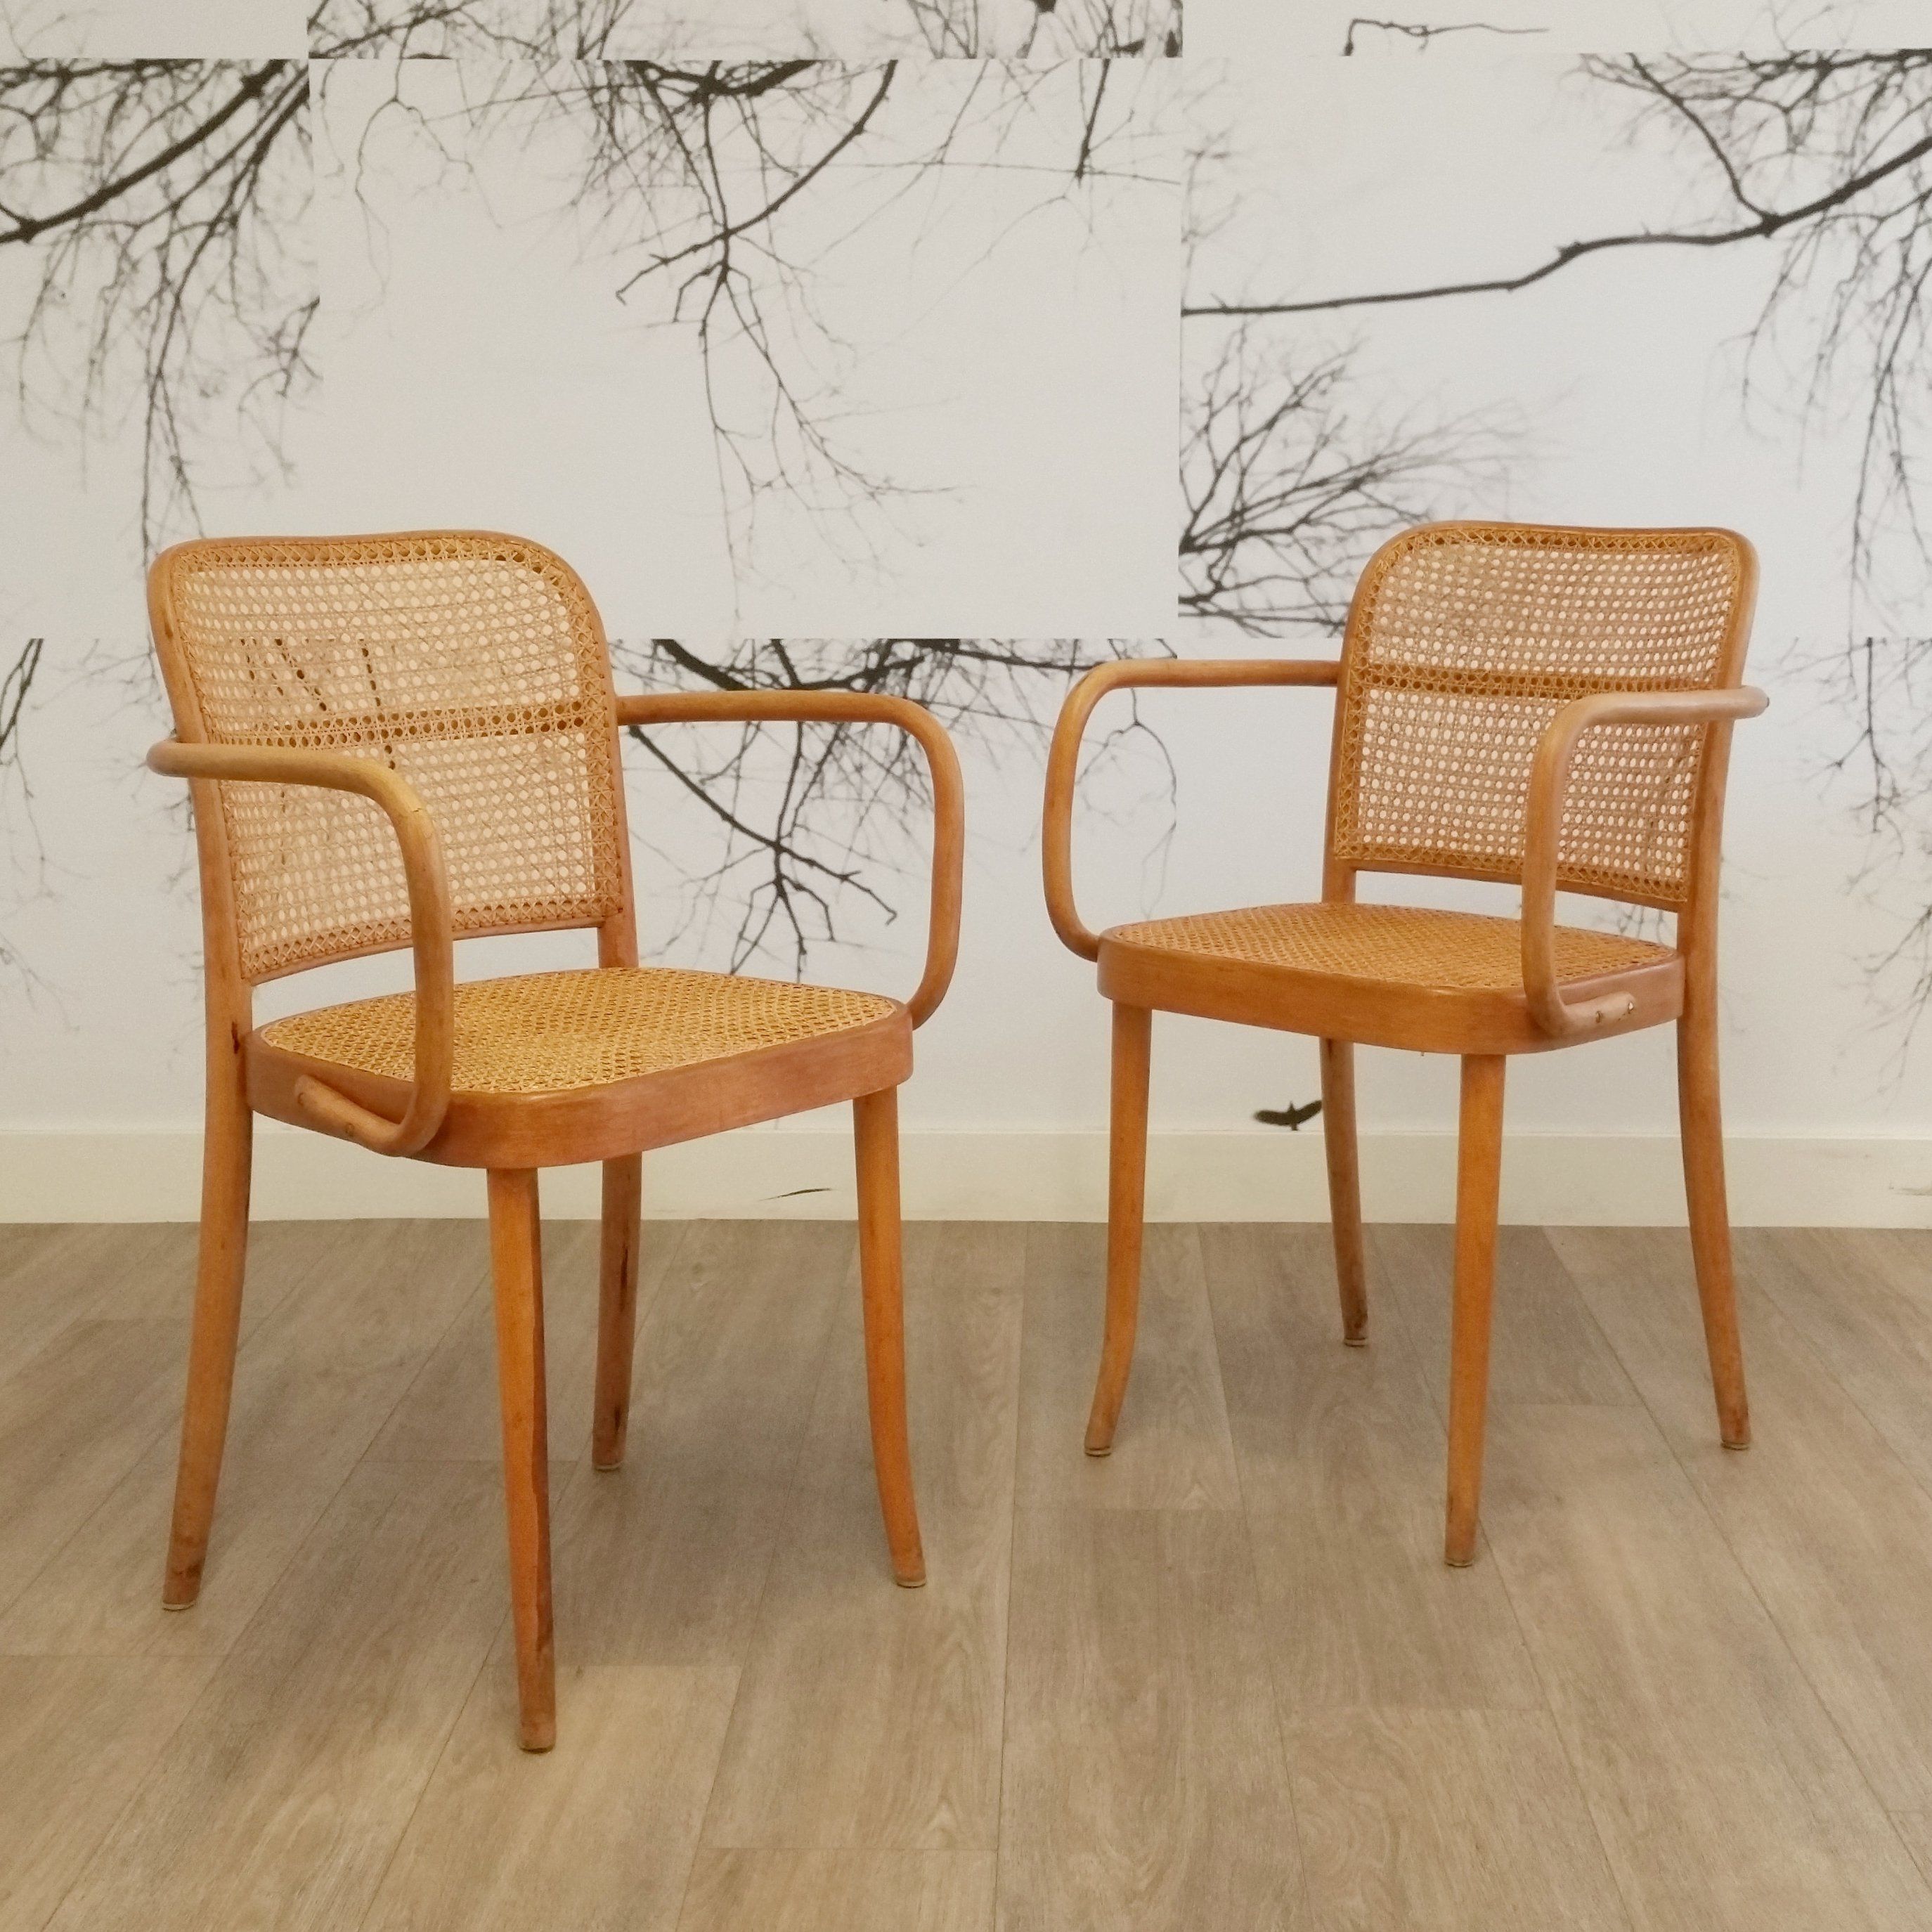 811 Chairs By Josef Hoffmann For Thonet